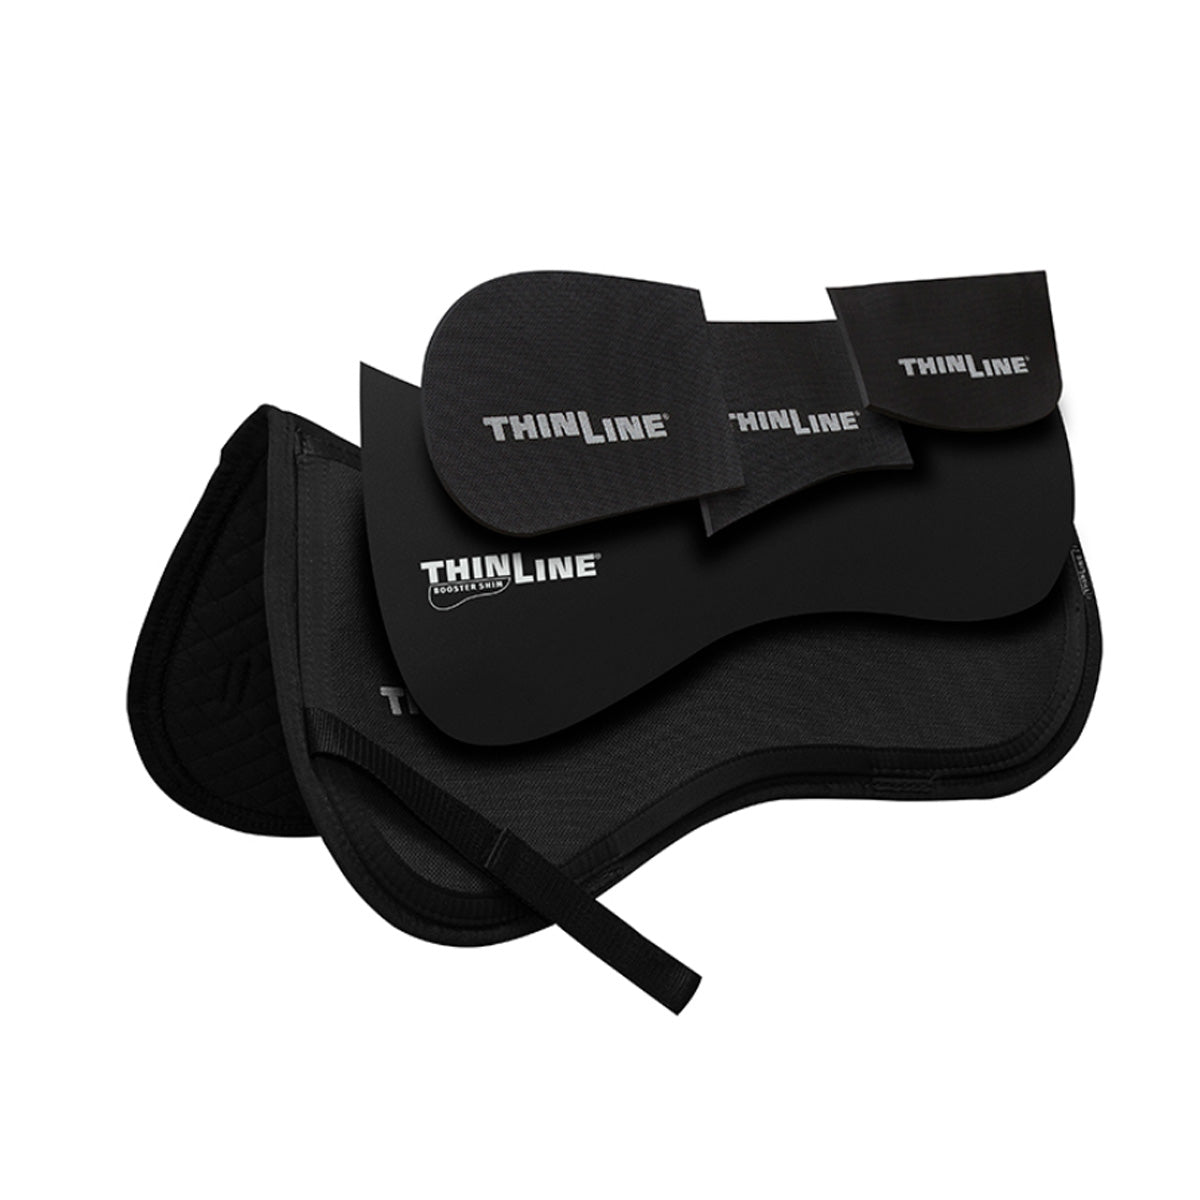 ThinLine English Trim to Fit Saddle Fitting Shims Pair